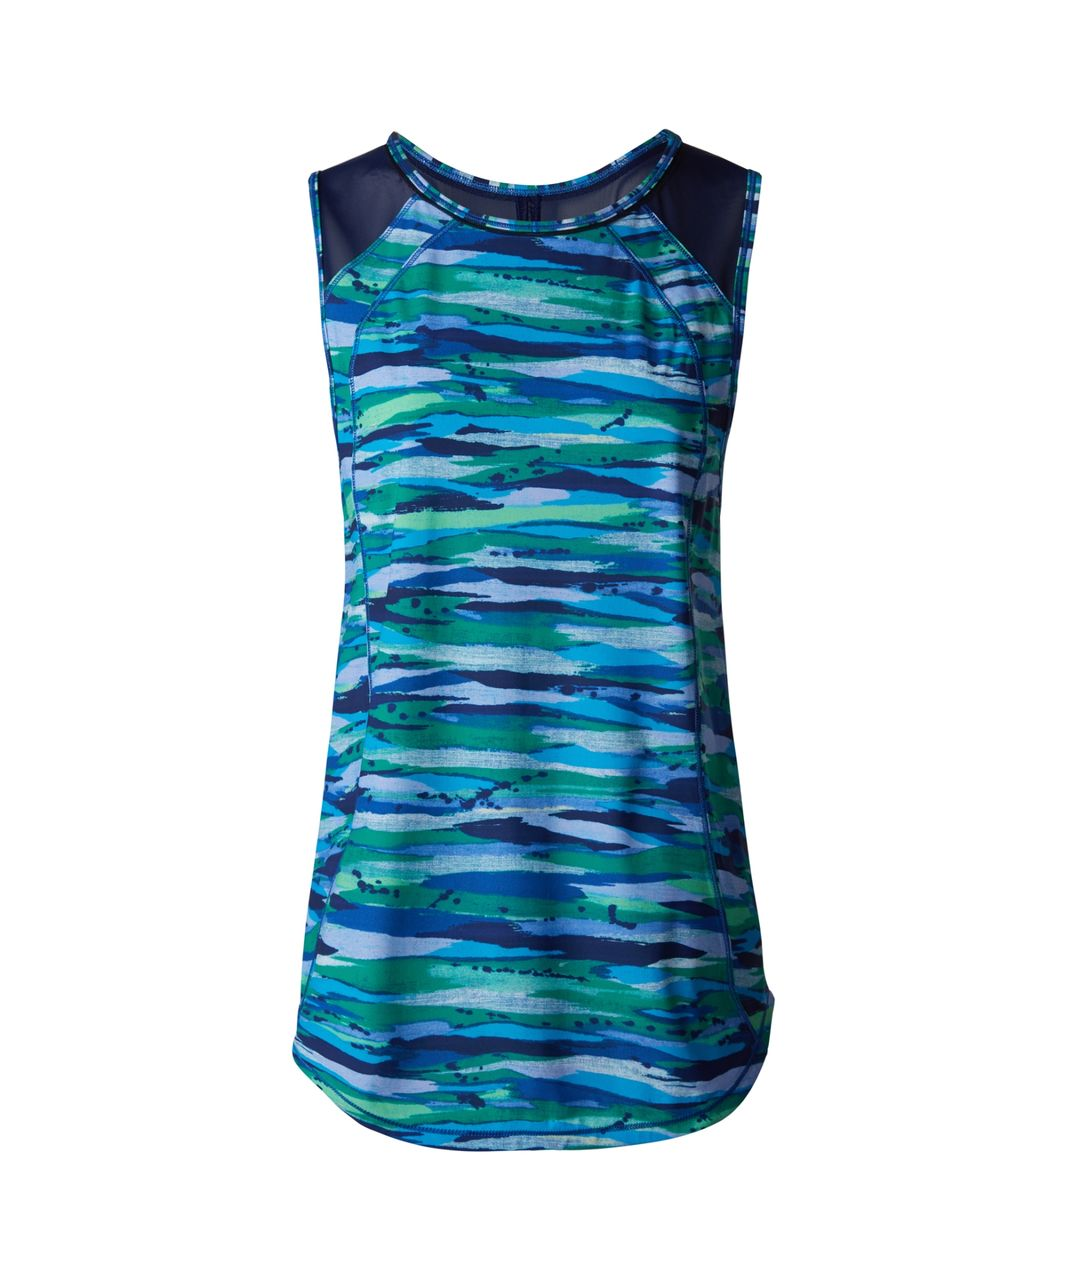 Lululemon Sculpt Tank - Seven Wonders Multi / Hero Blue